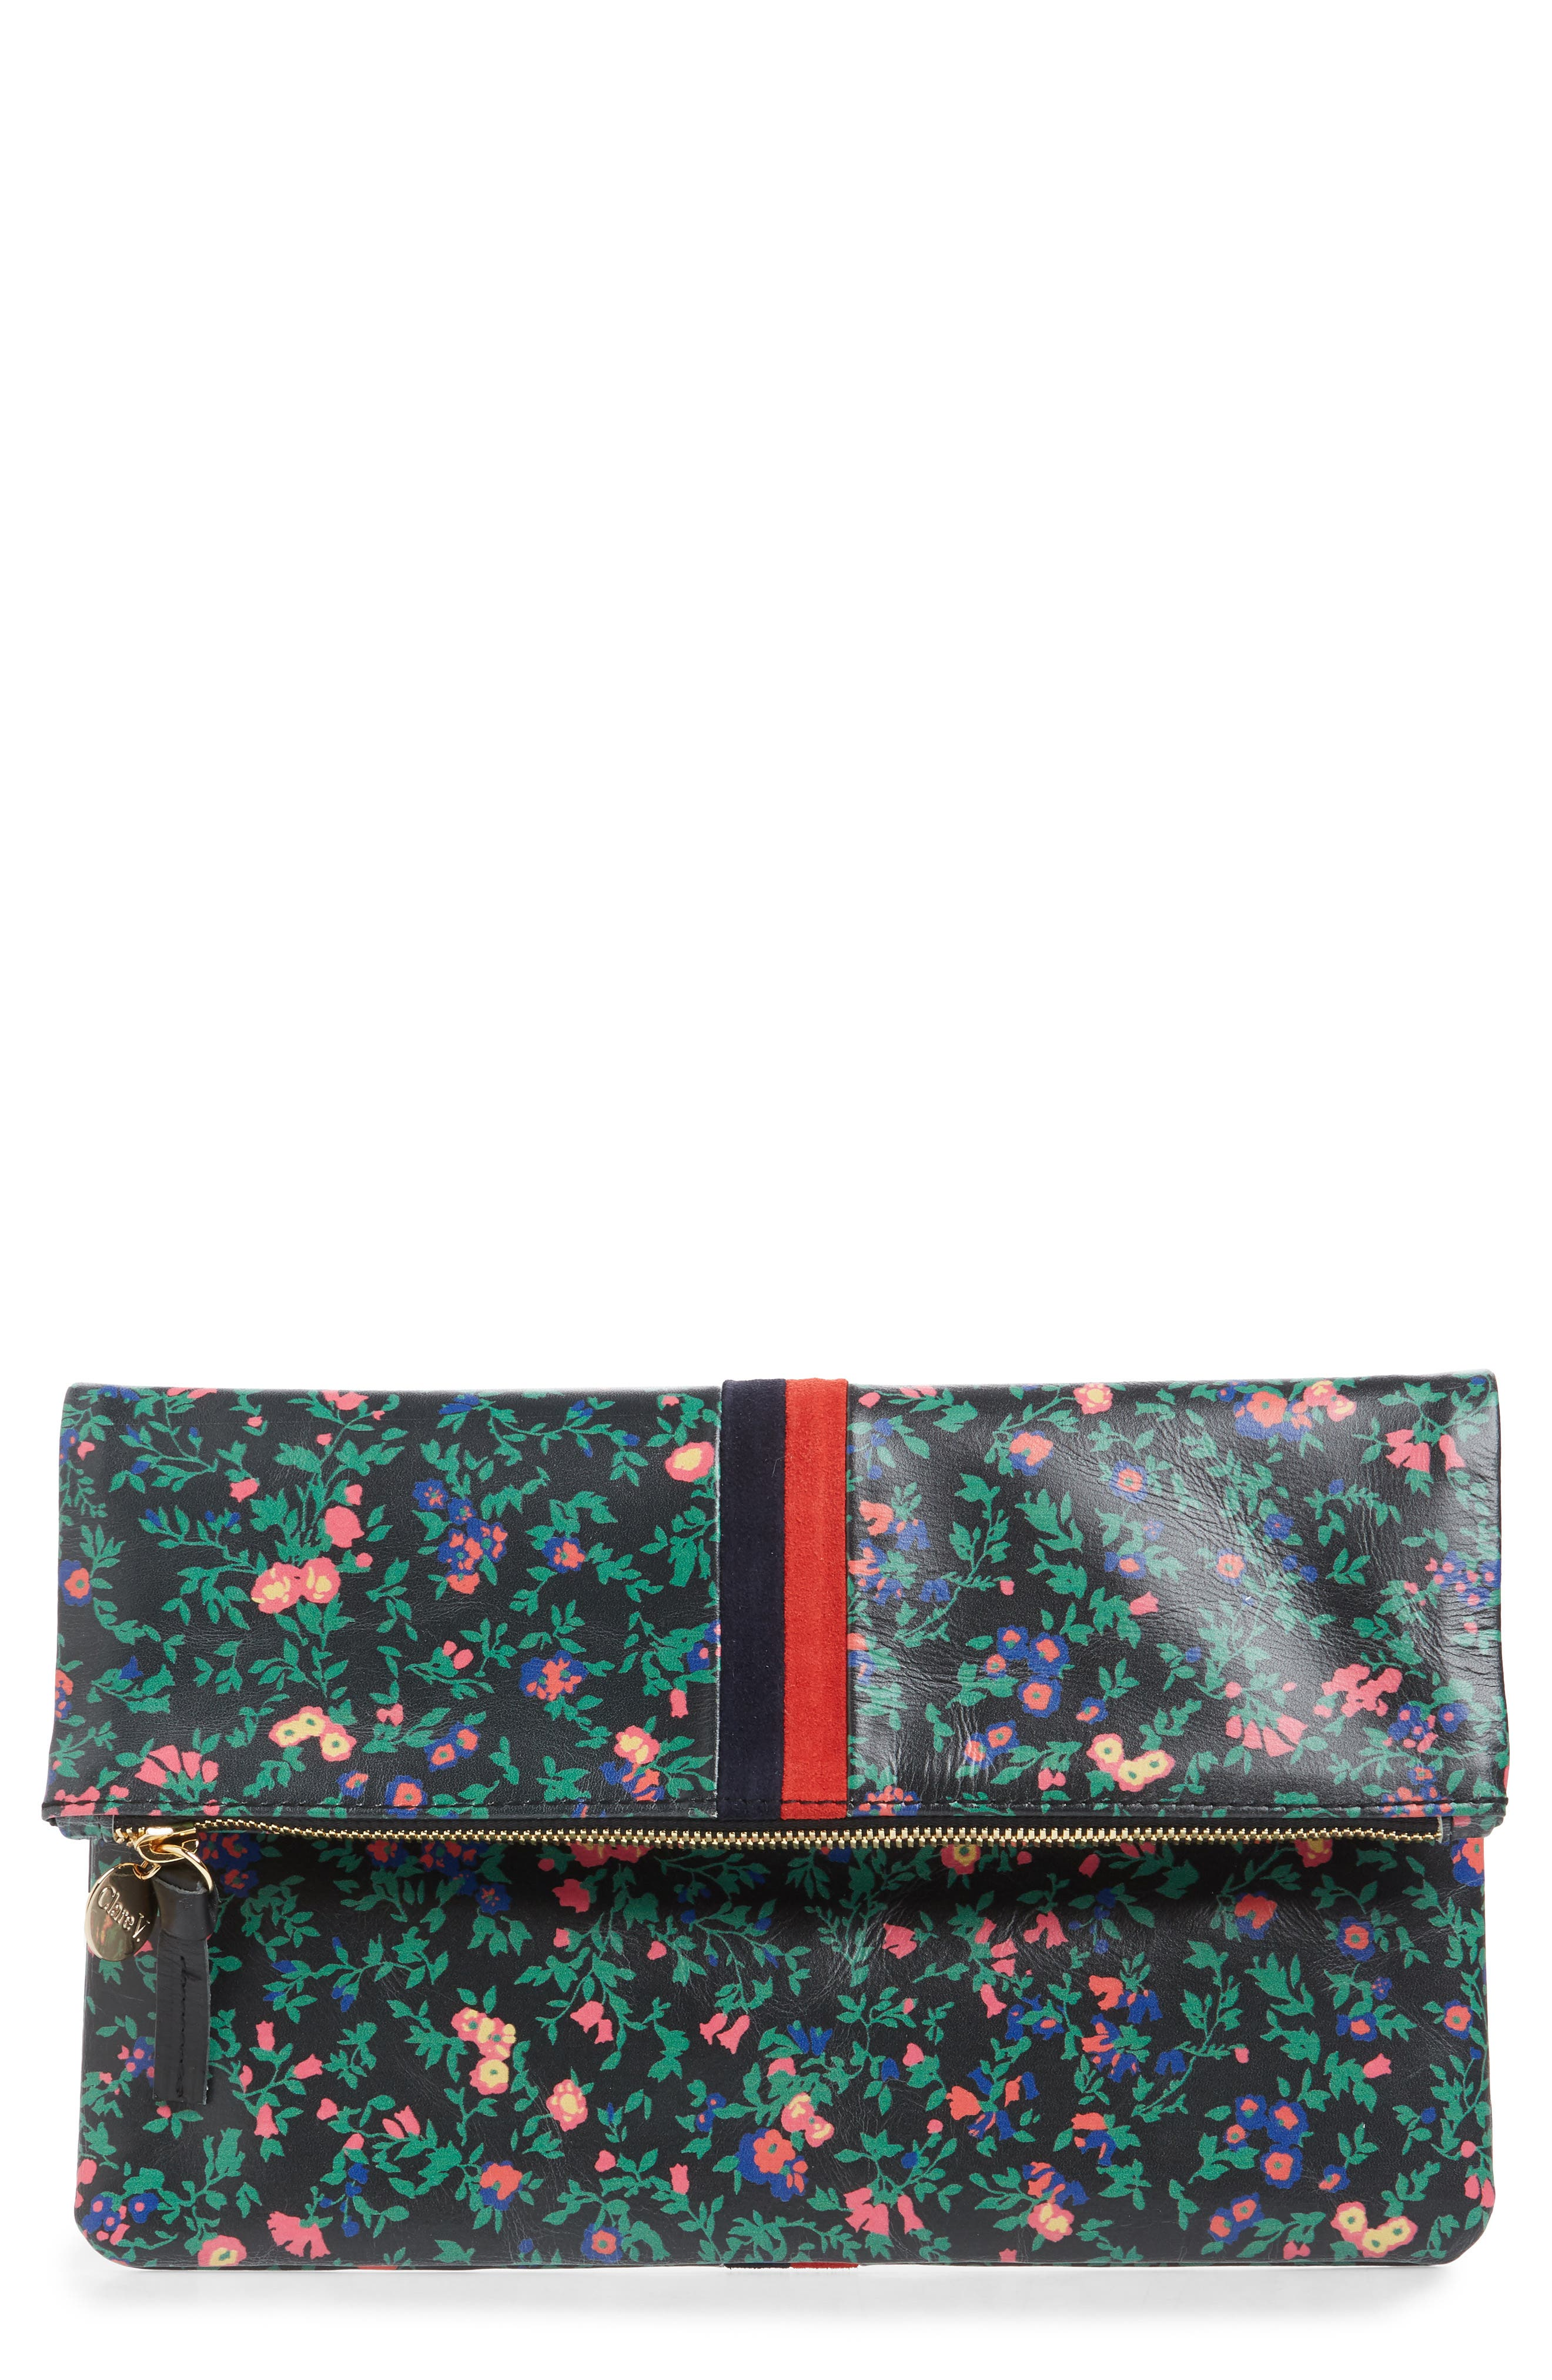 Foldover Ditzy Floral Leather Clutch,                             Main thumbnail 1, color,                             BLACK